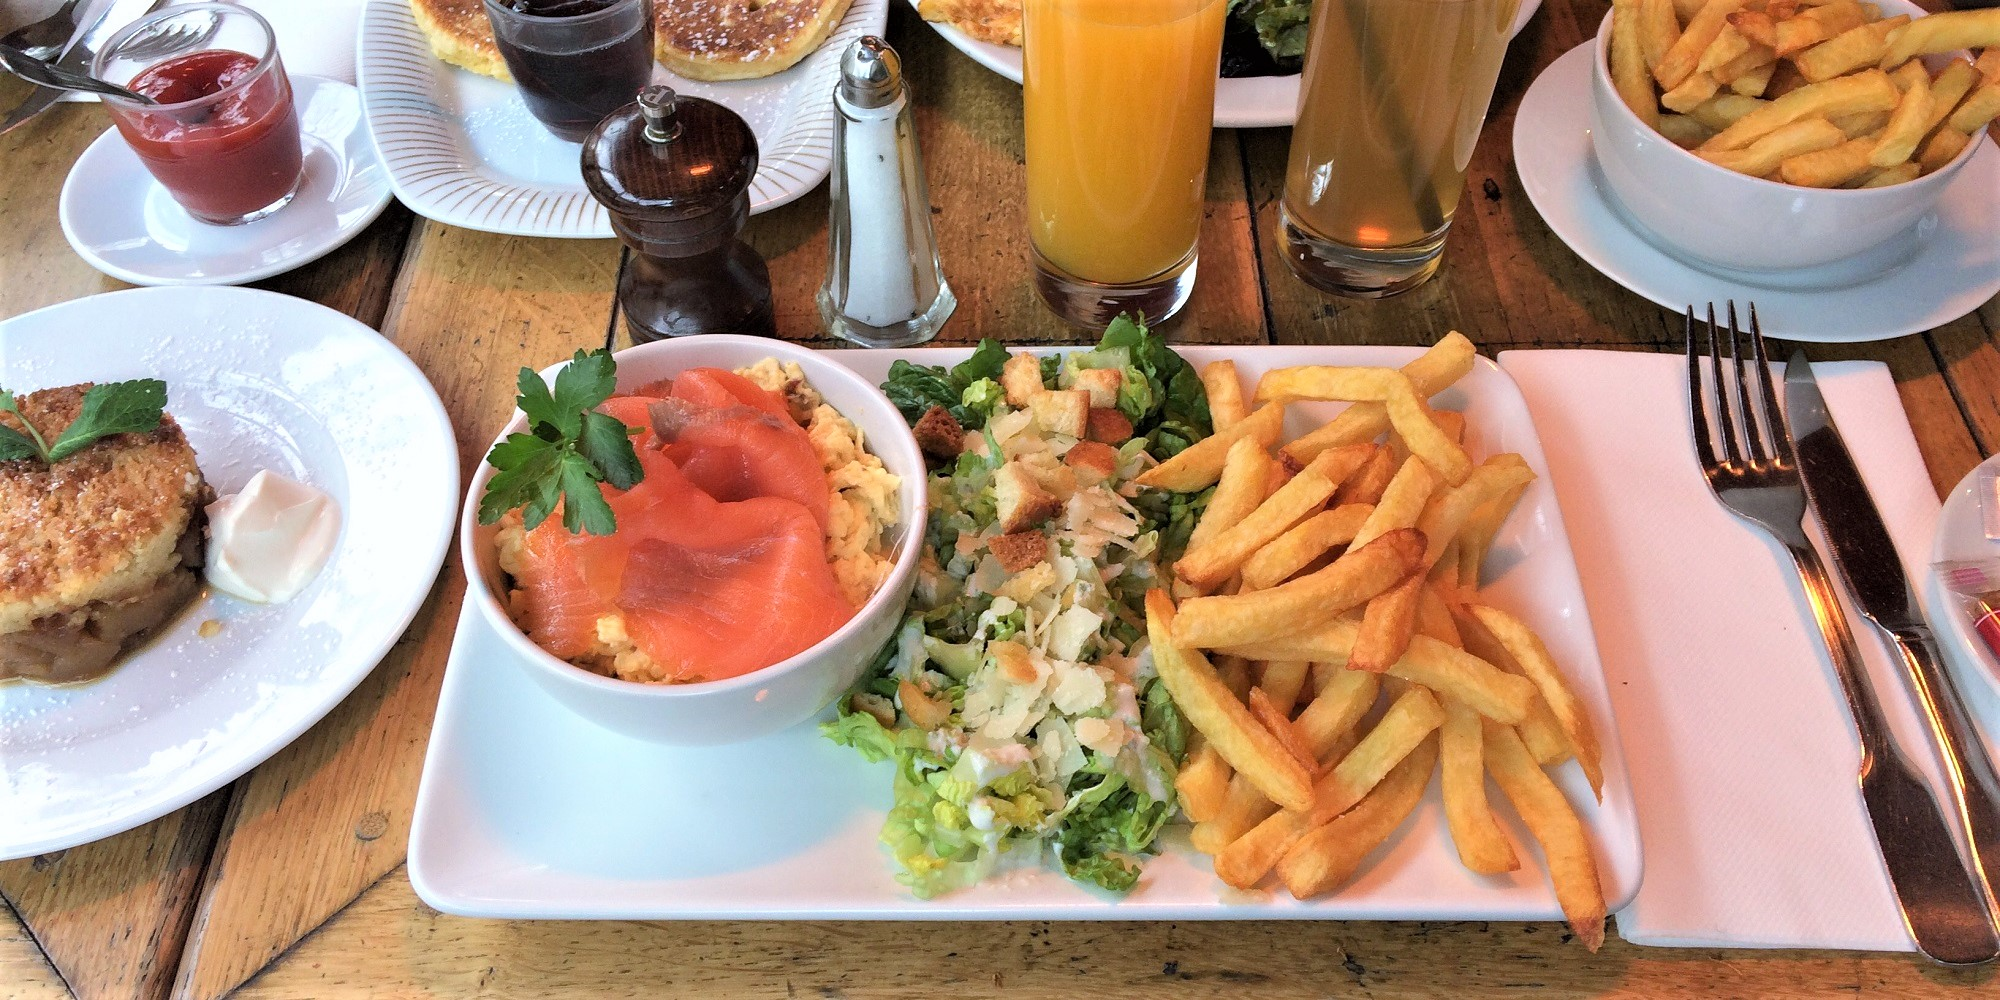 Brunch Chez Margot (75004 Paris)